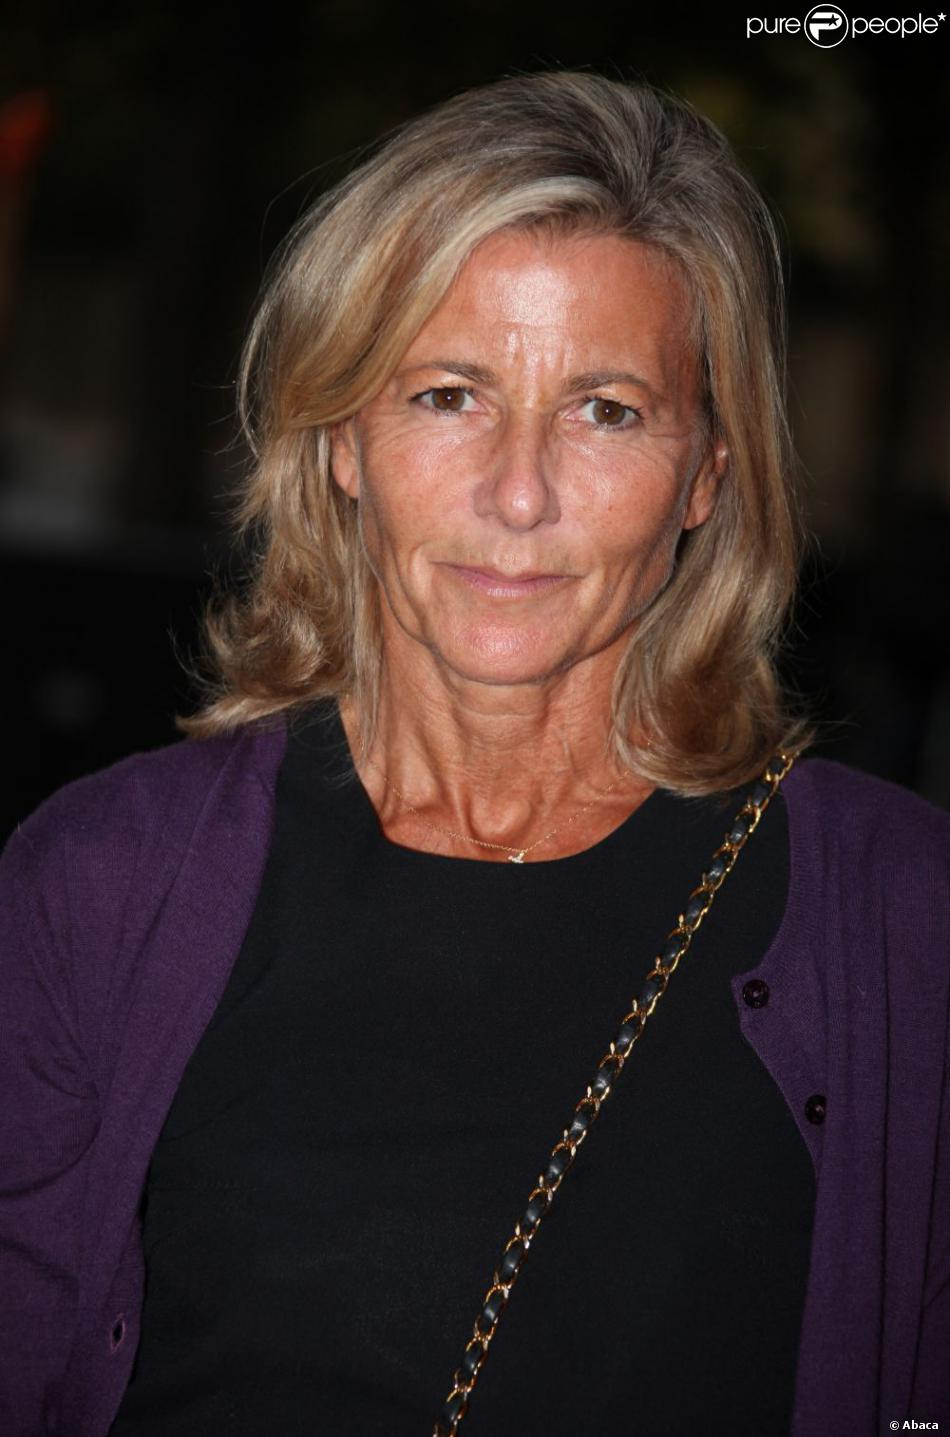 claire chazal son p re jean chazal est mort 88 ans purepeople. Black Bedroom Furniture Sets. Home Design Ideas